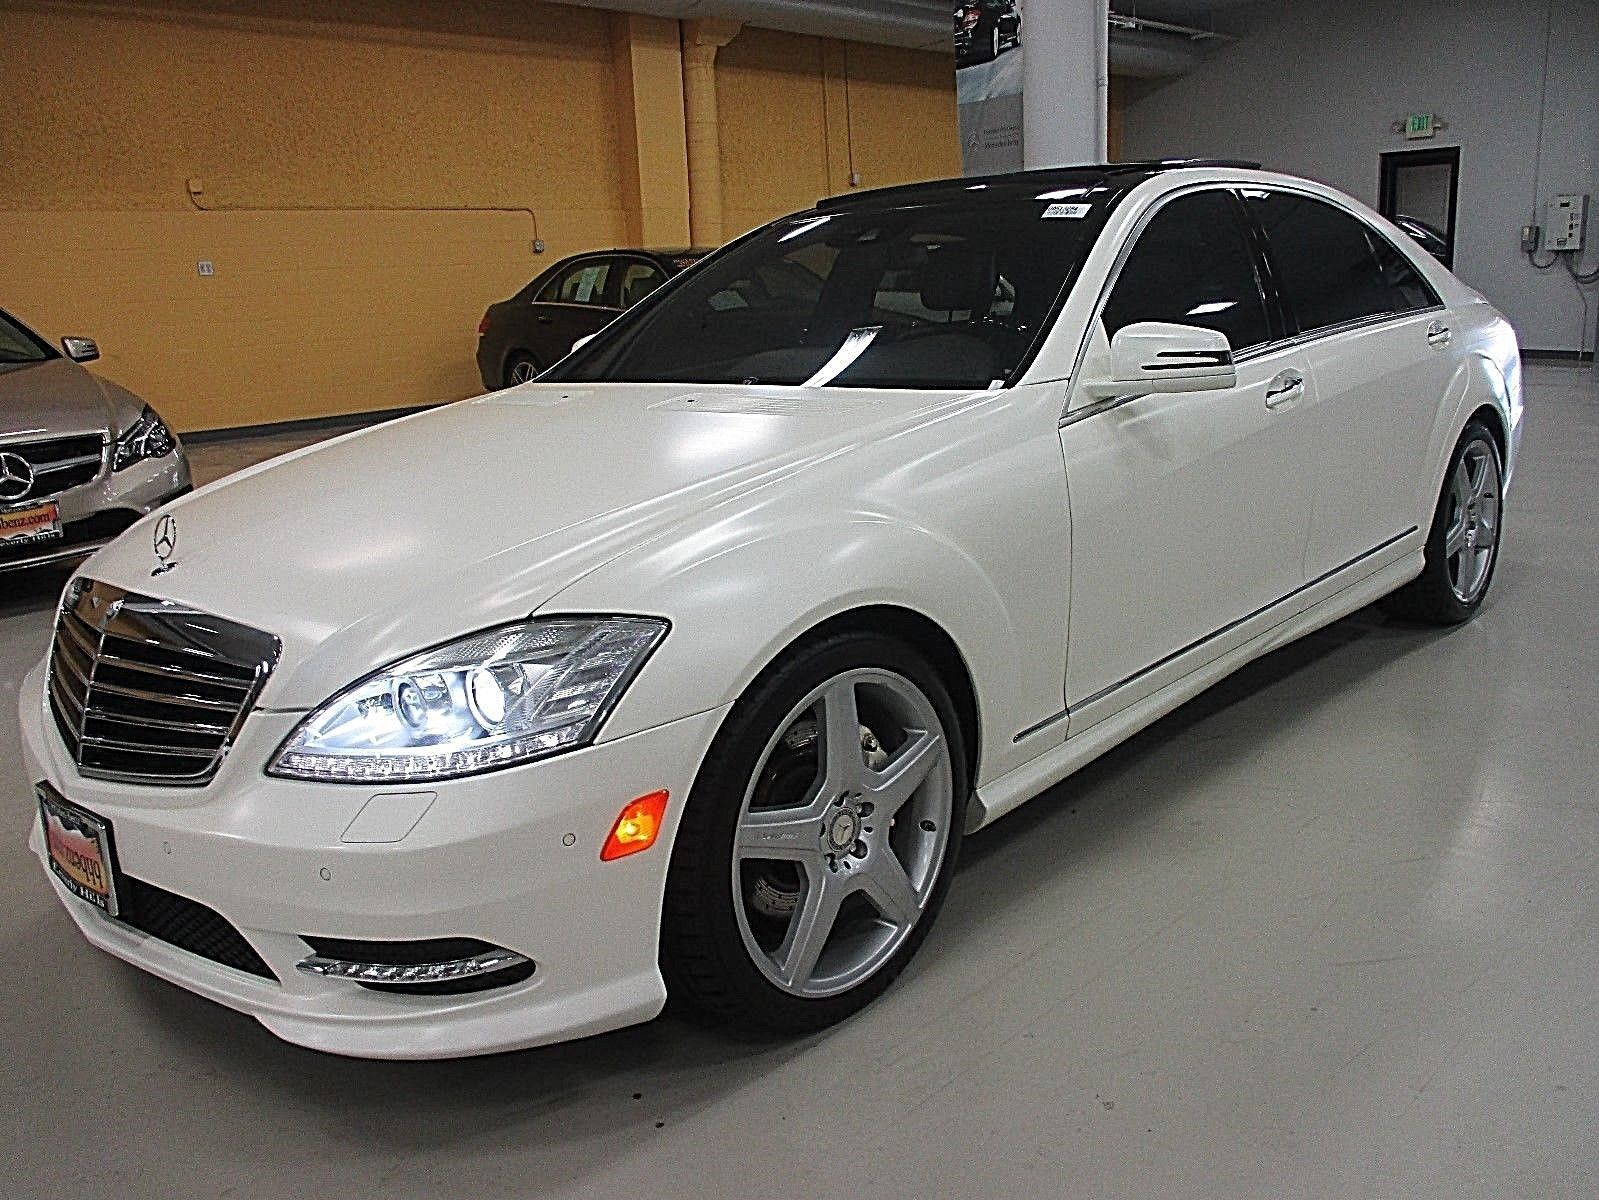 amgin pasig amg used philippines sale mercedes city for benz